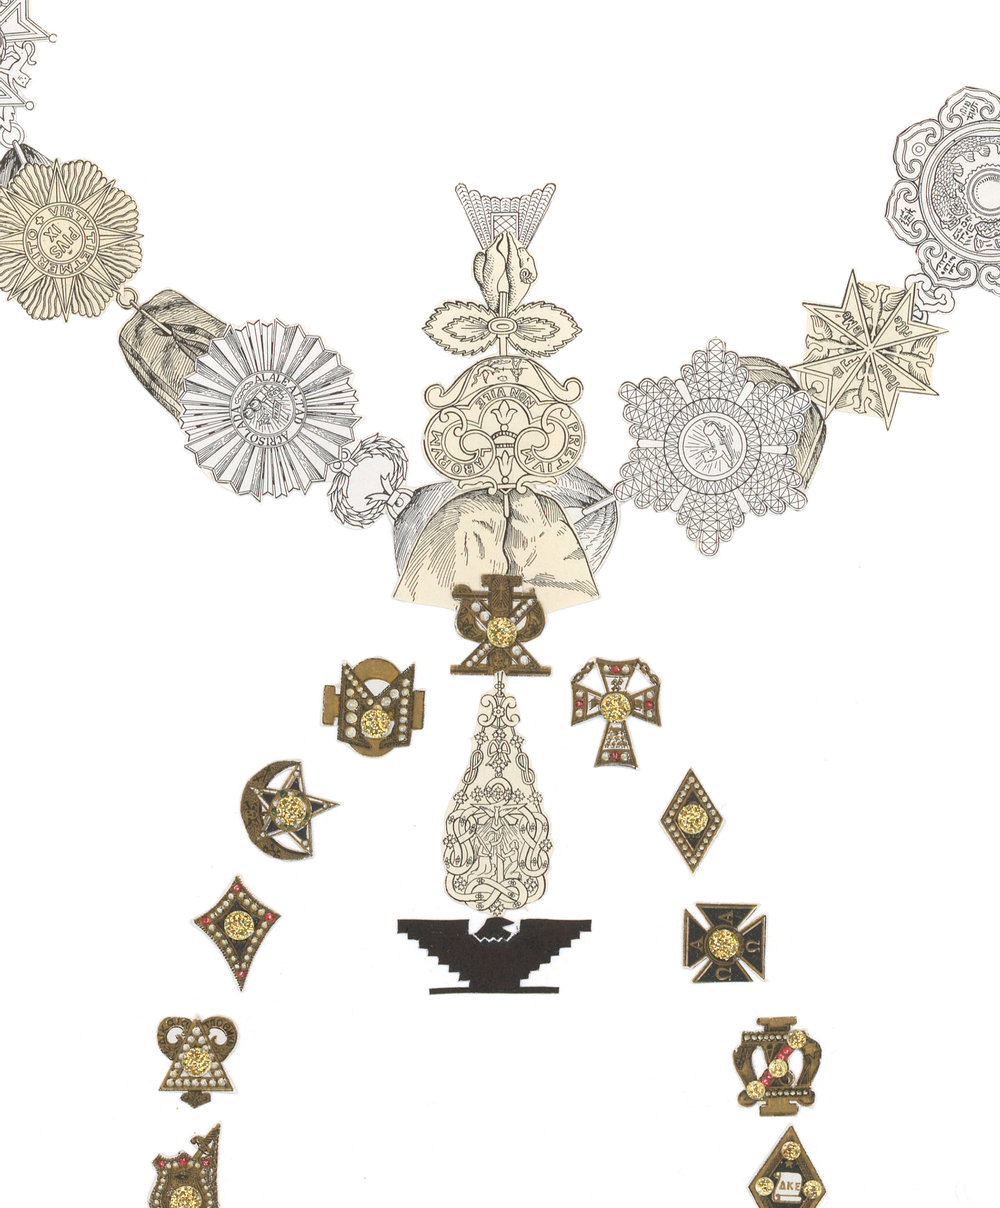 Necklace of Adornment_crop.jpg